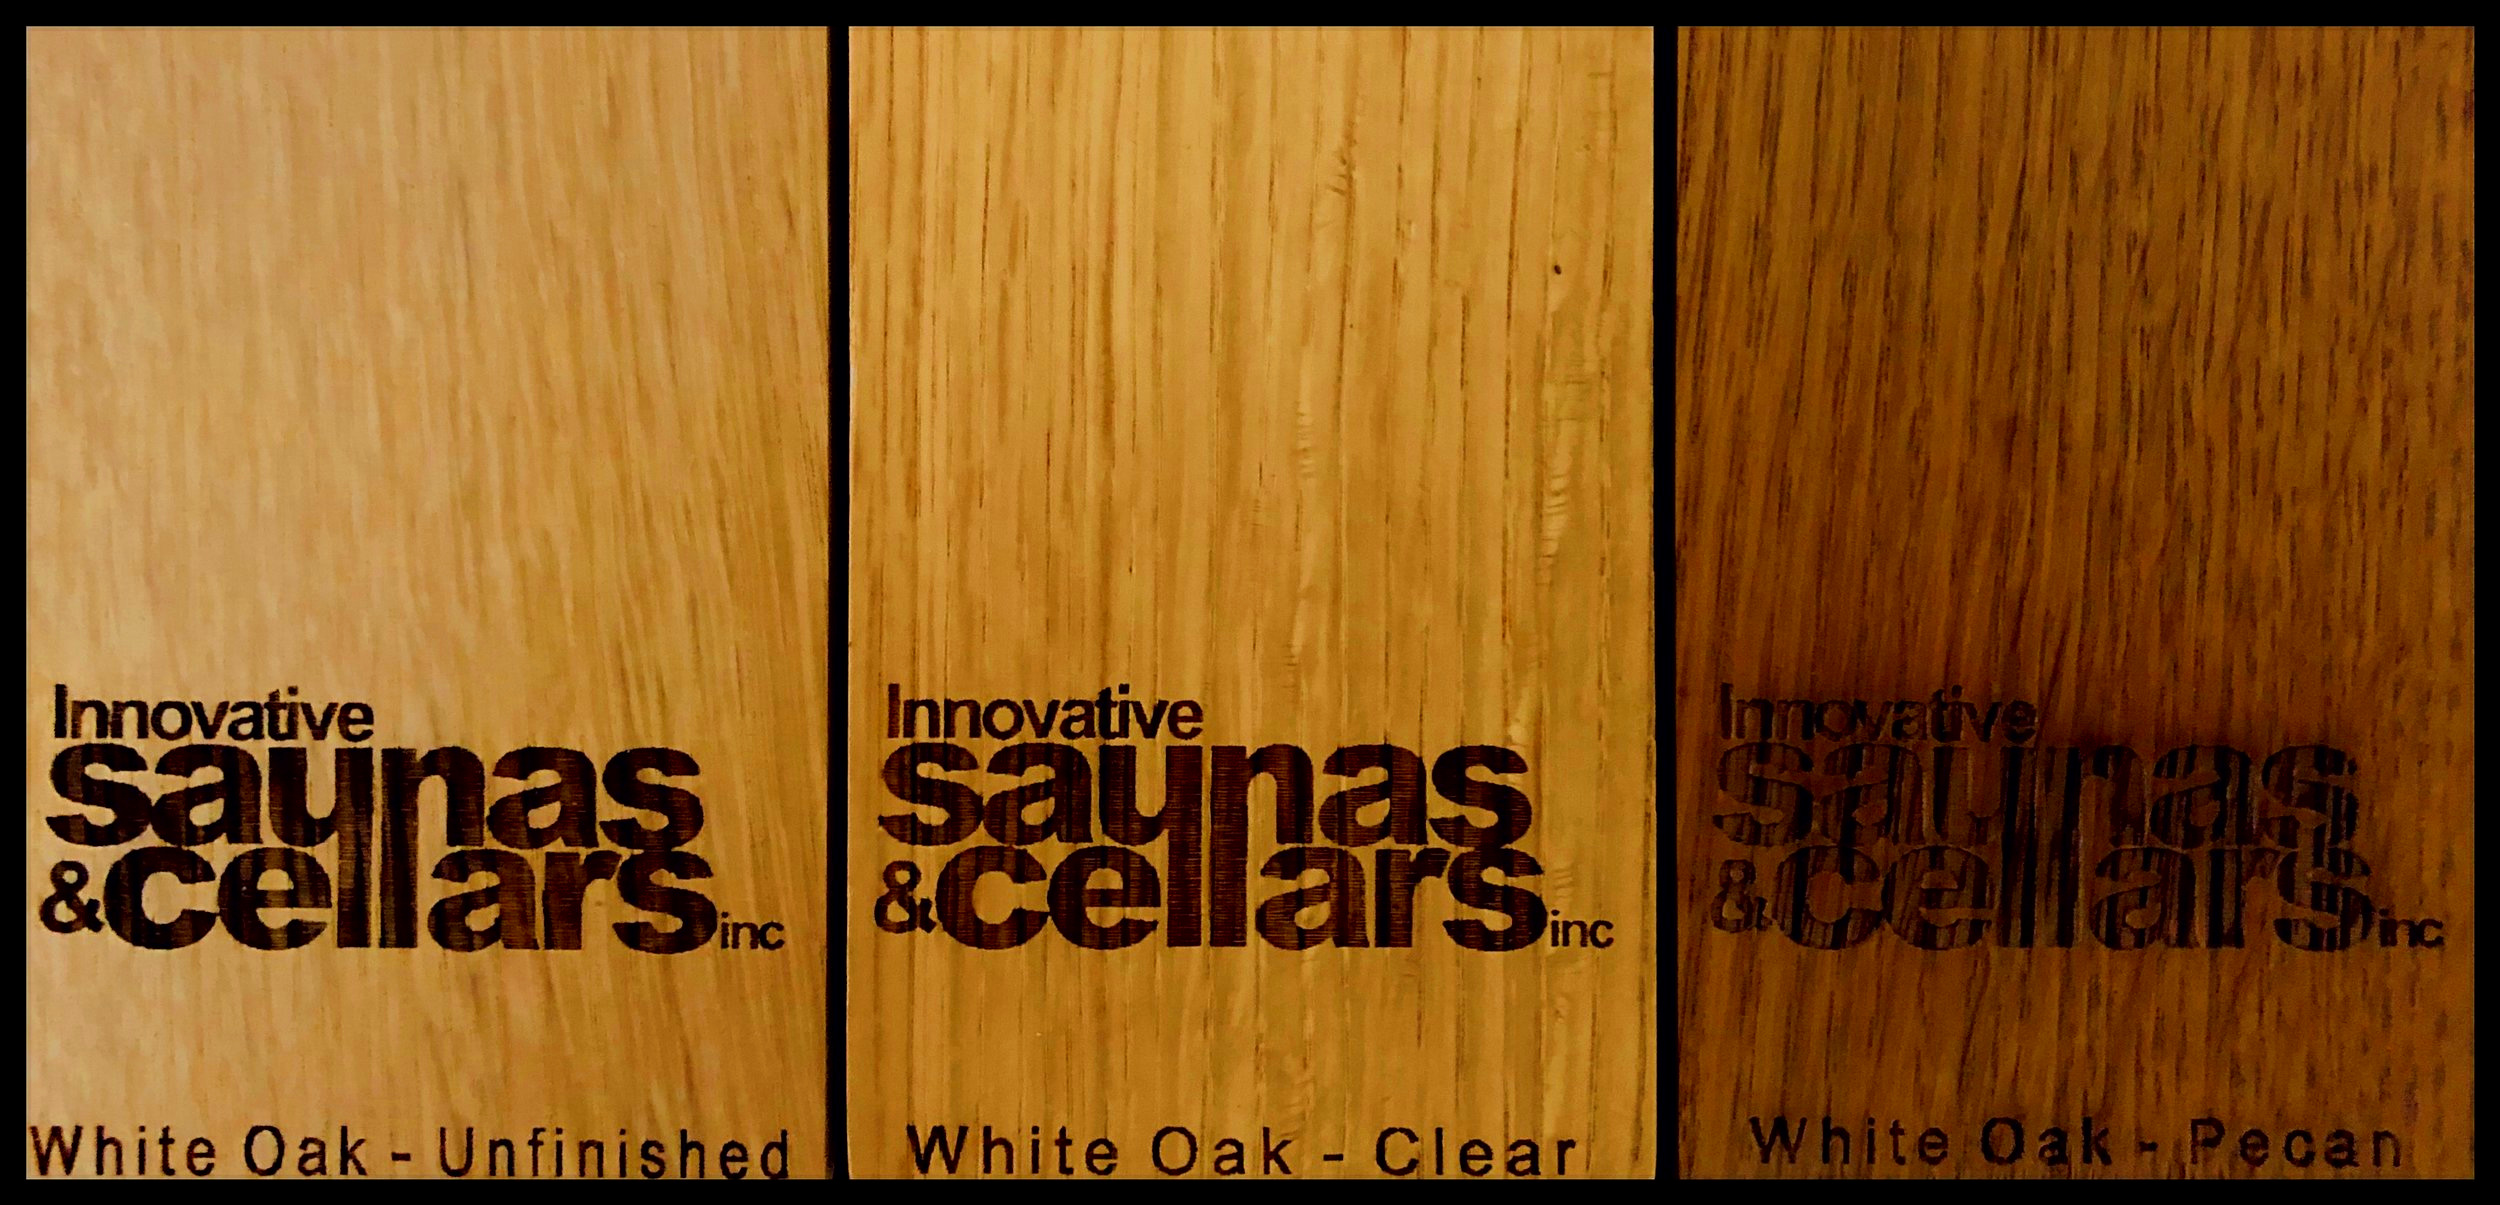 White Oak:  Unfinished - Clear Lacquer - Pecan